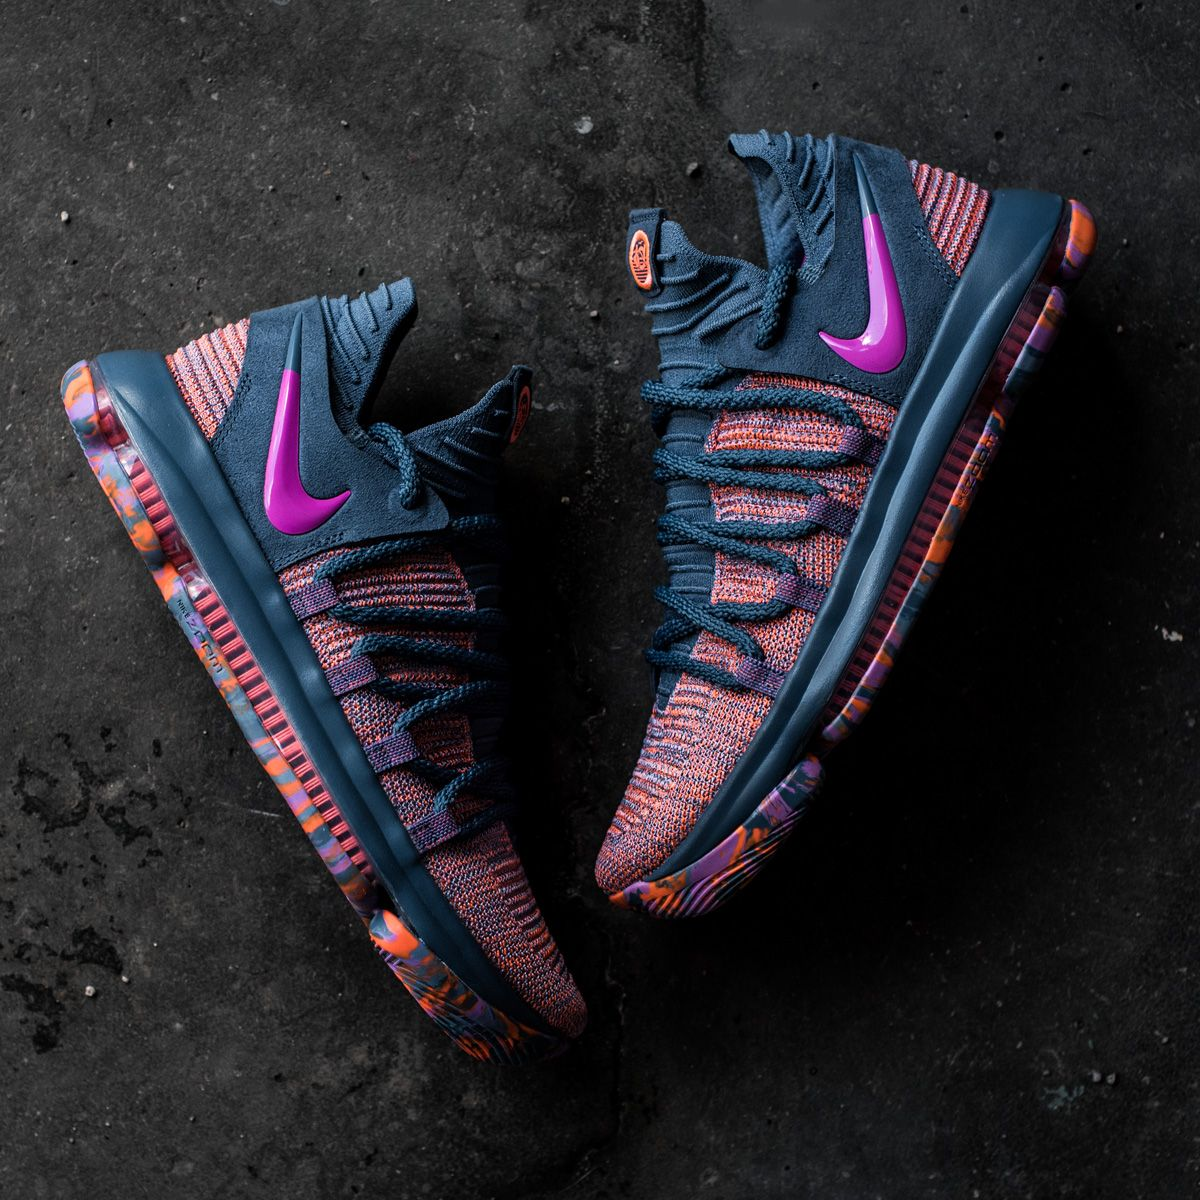 51a3f821ffa KD s shoes for All Star Game are available NOW on KICKZ.com and in selected  stores!